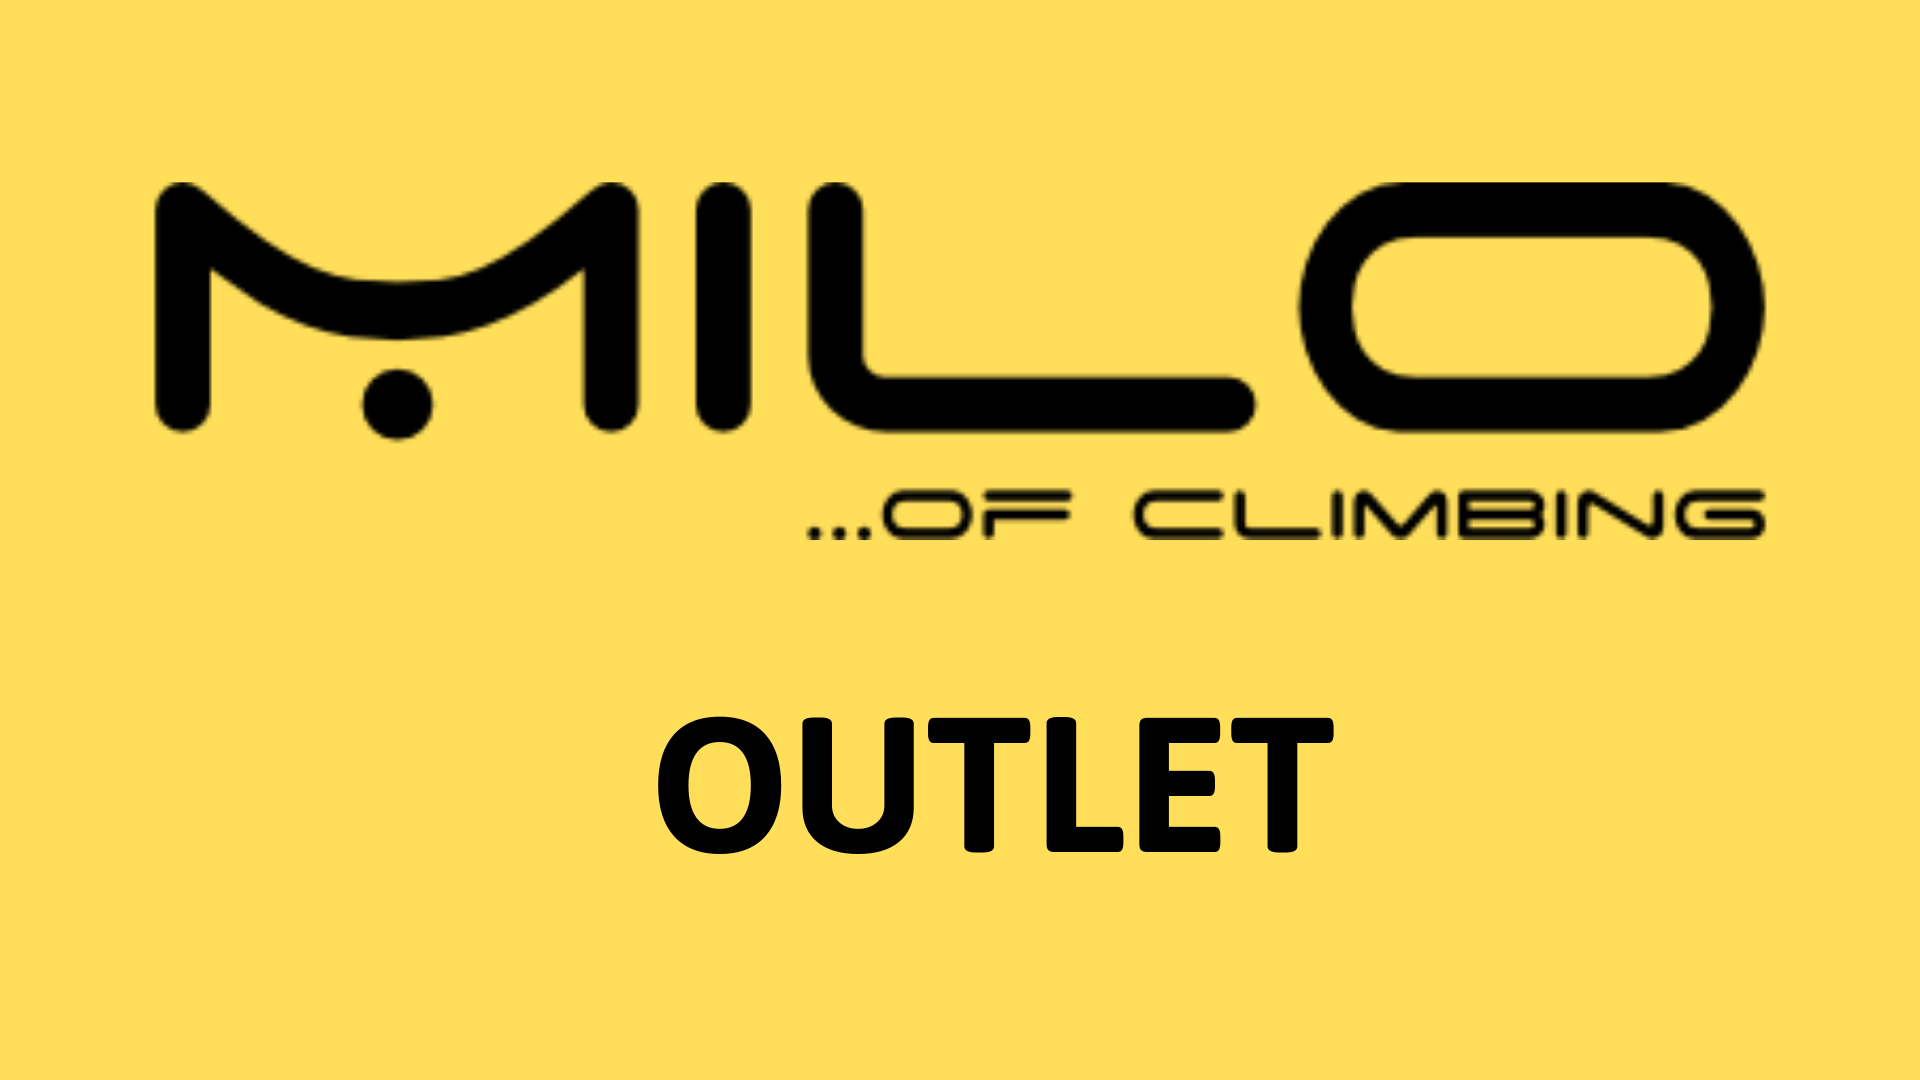 OUTLET MILO.png